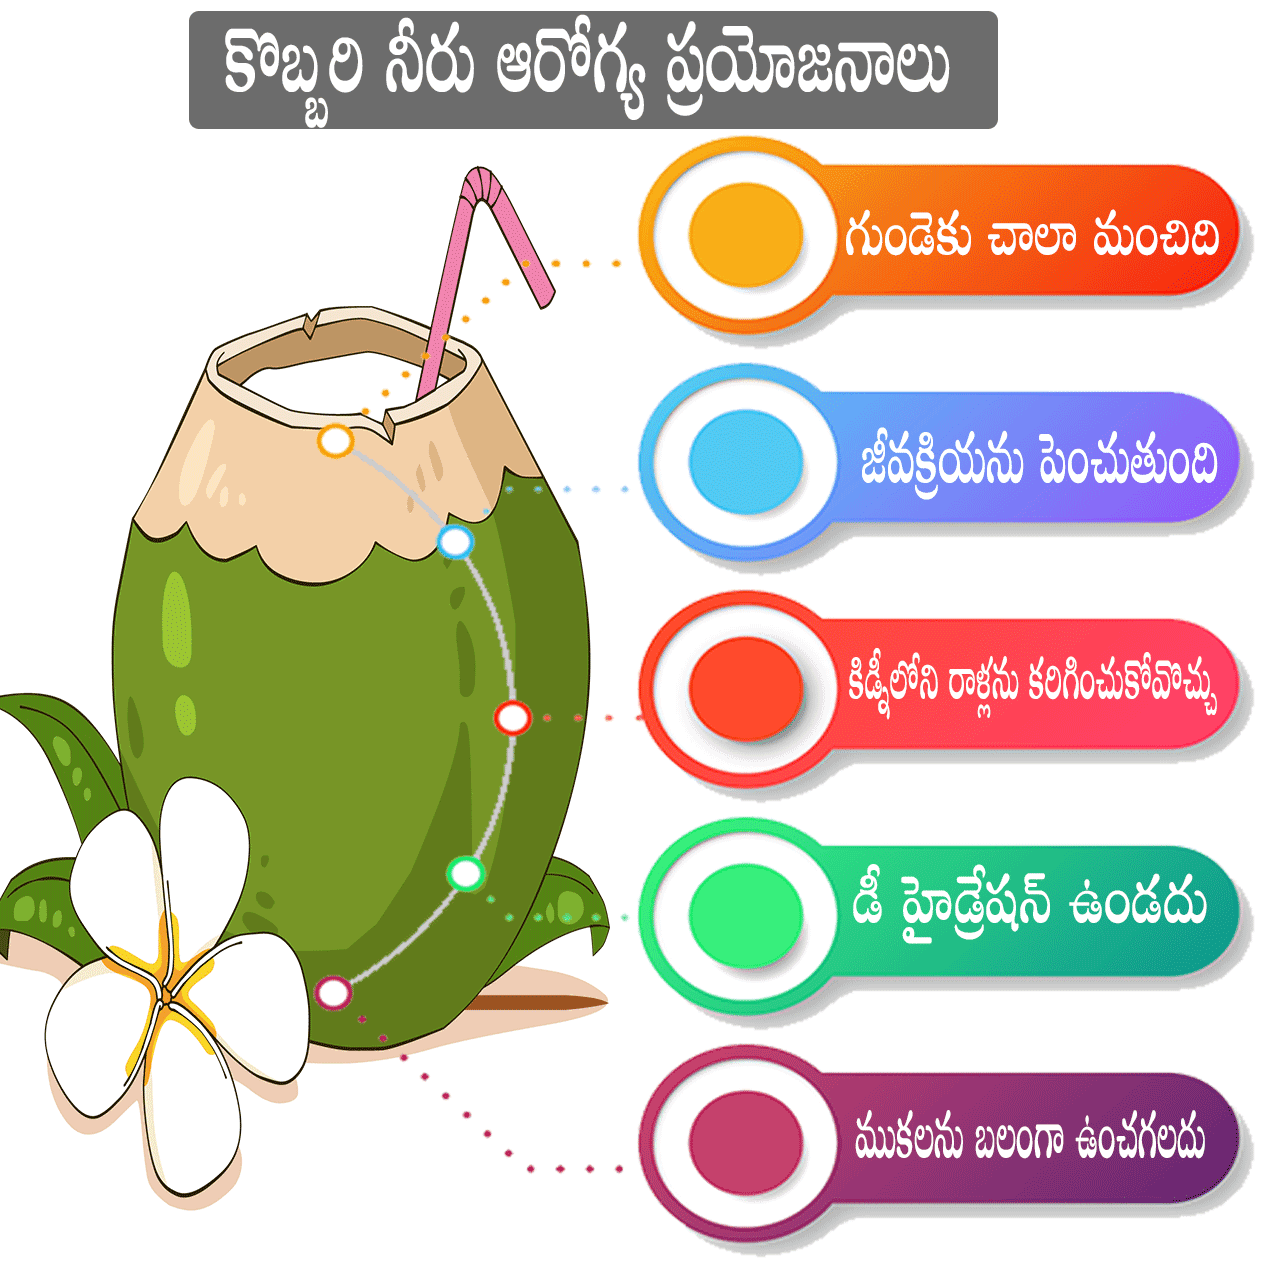 coconut water benefits in telugu